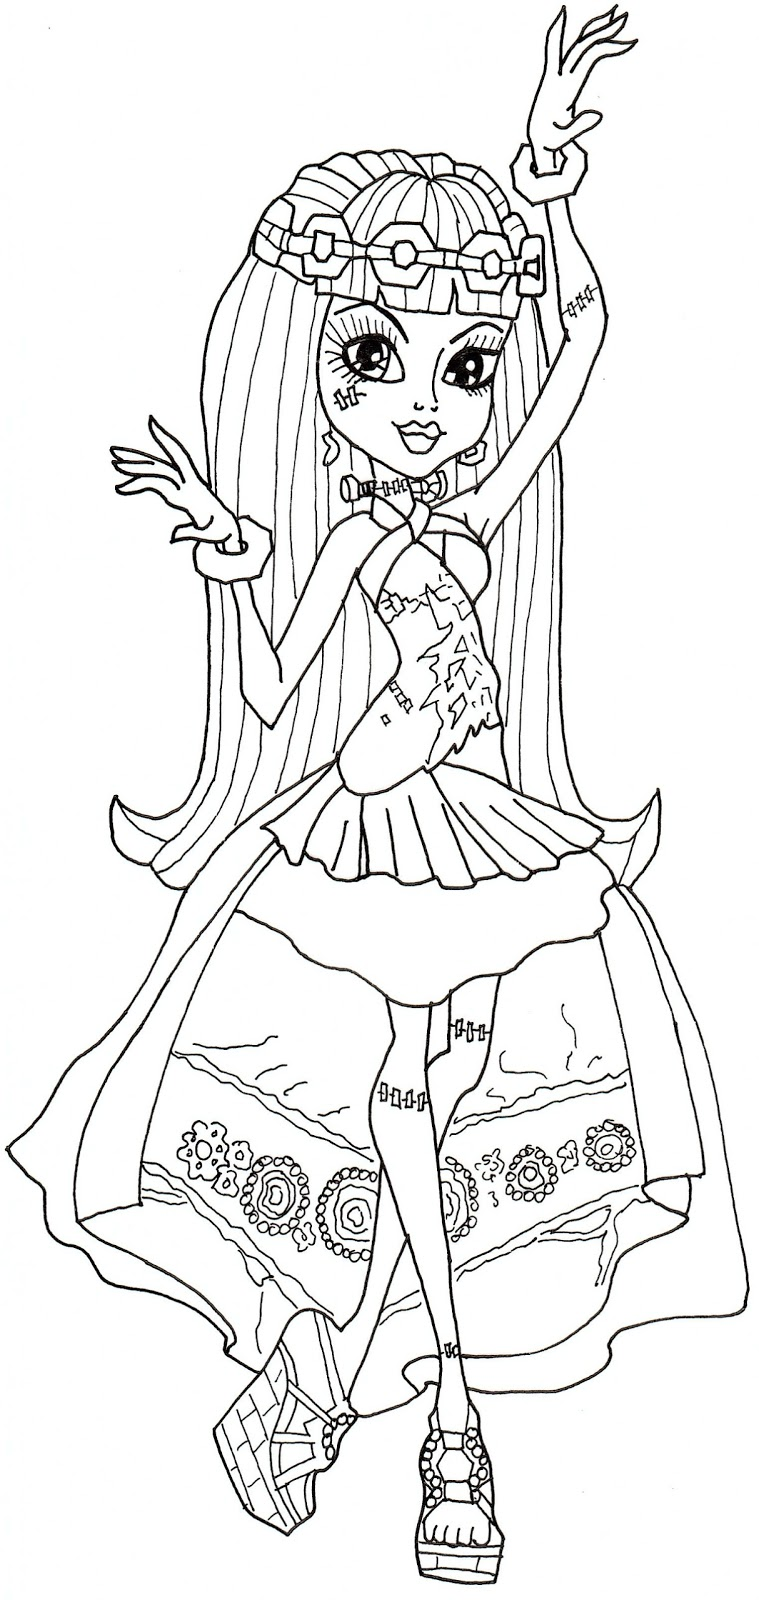 Free Printable Monster High Coloring Pages: Frankie Stein ...